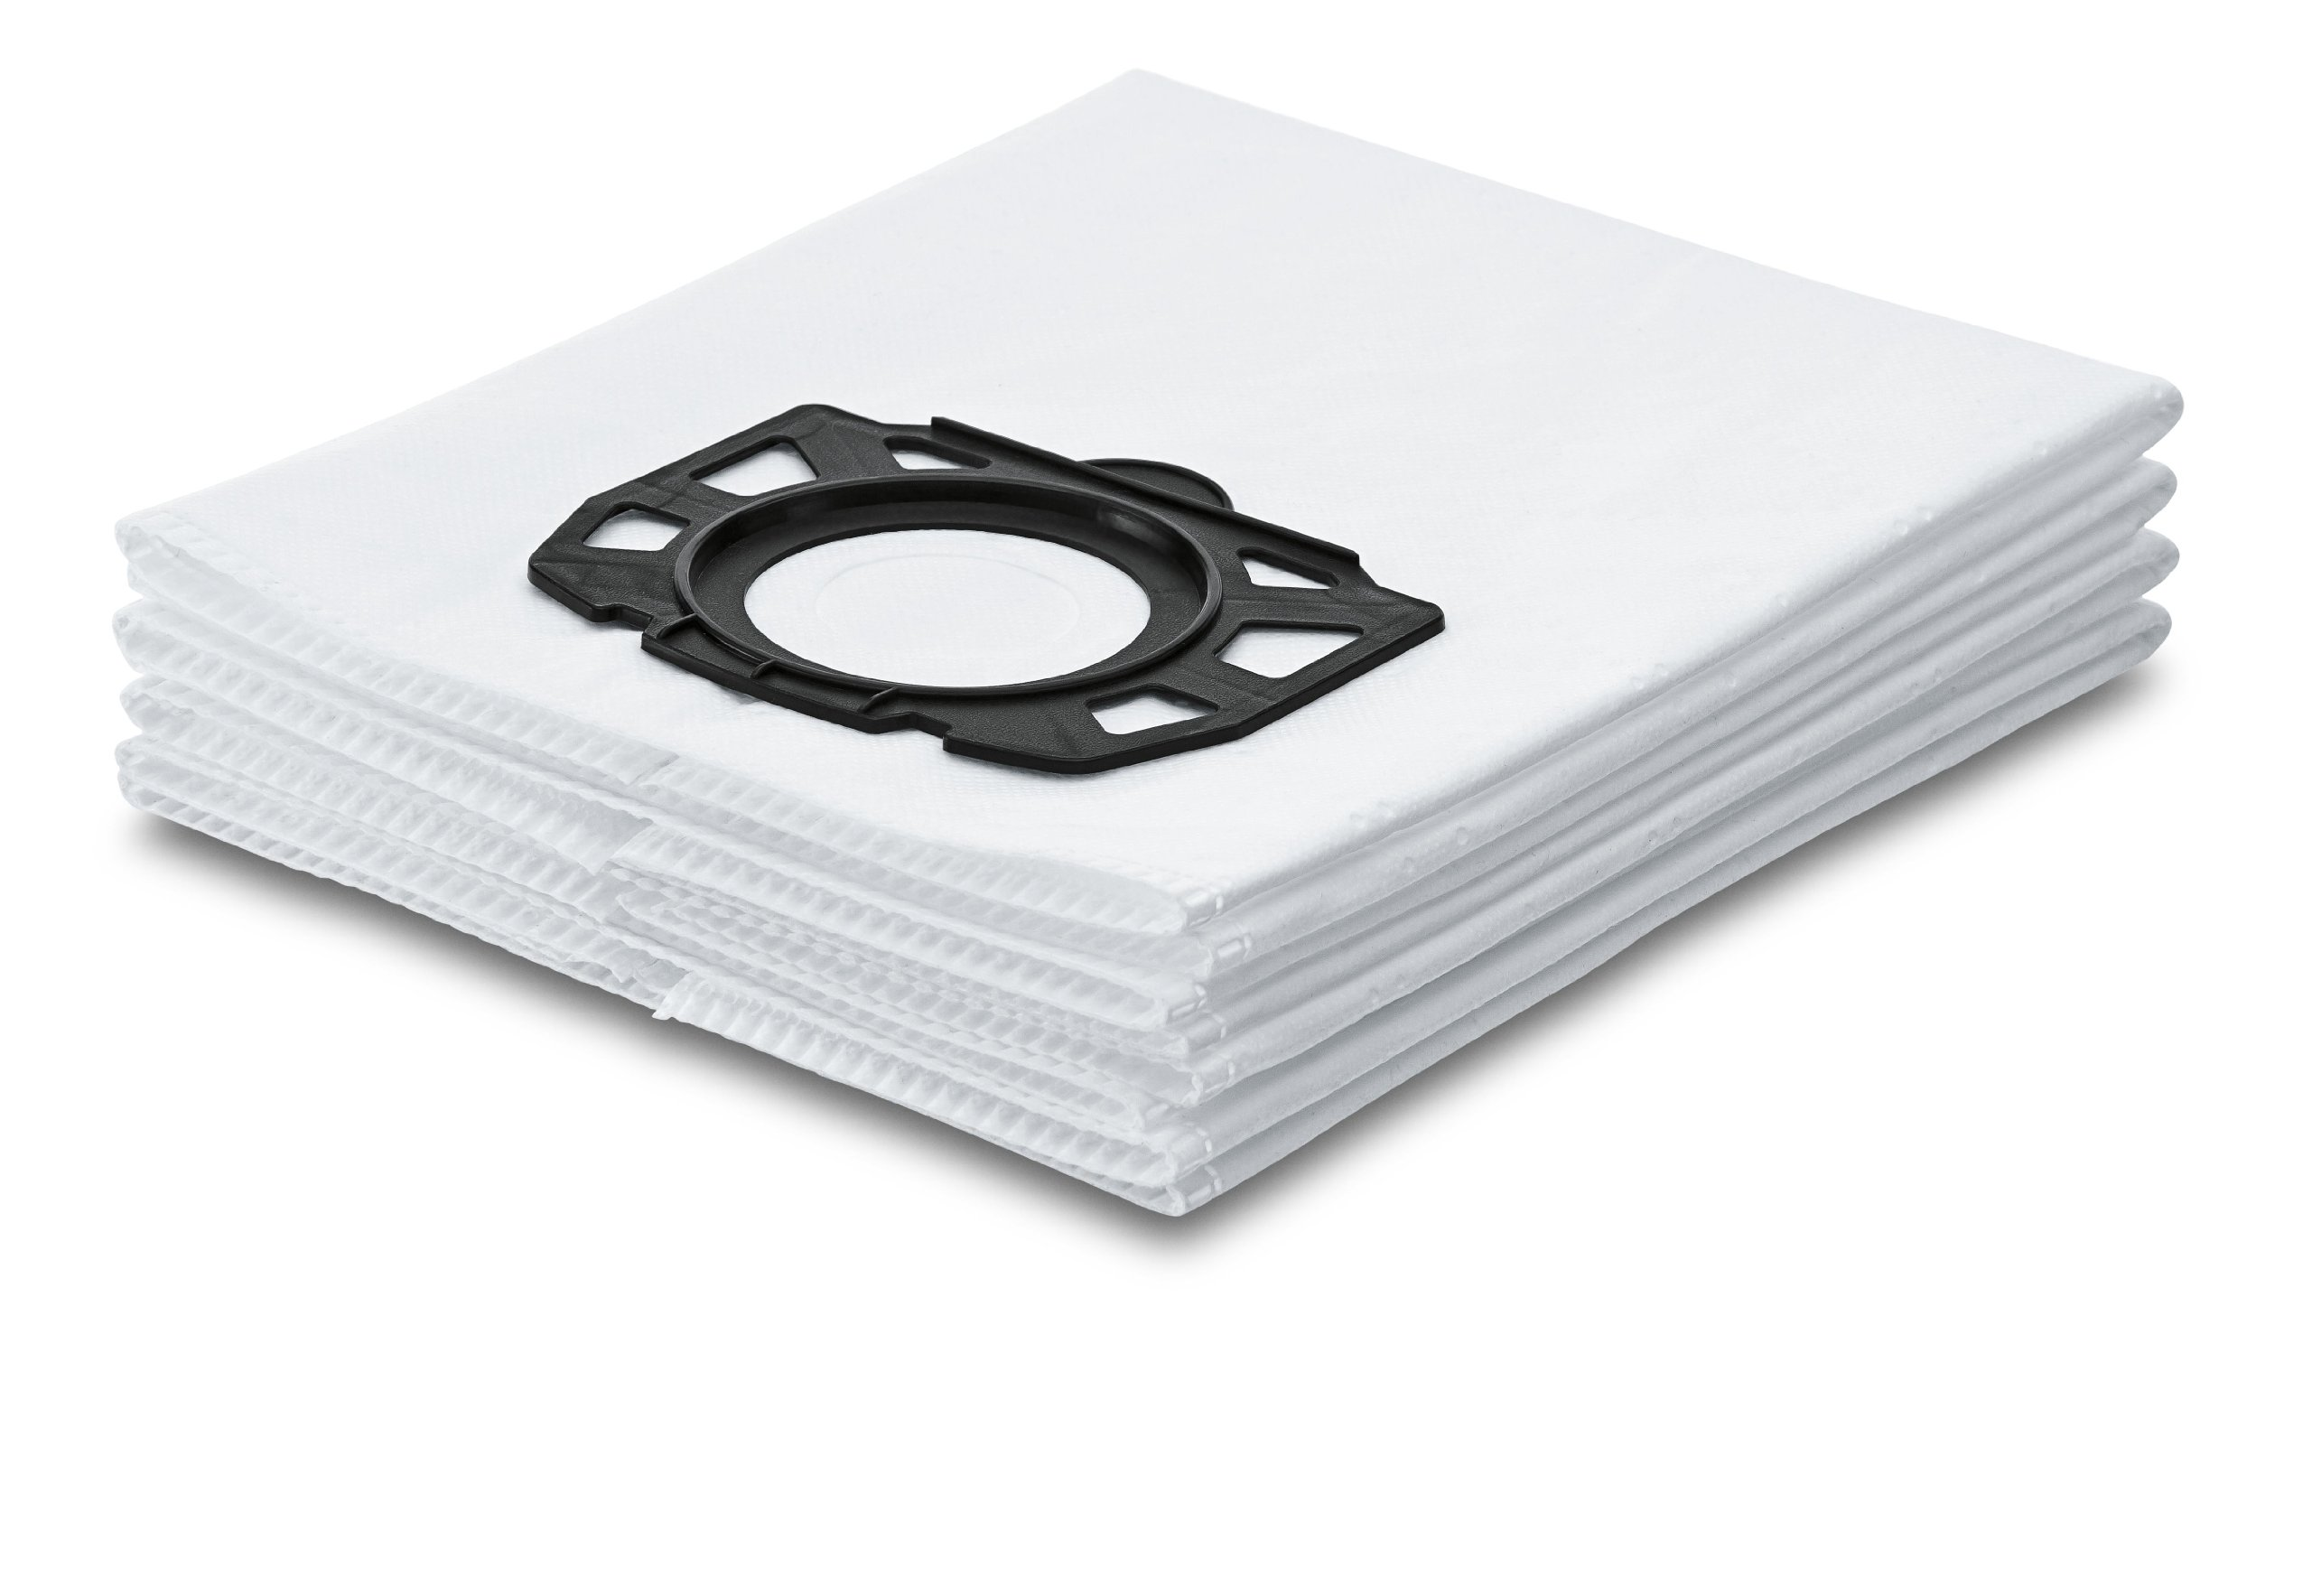 Karcher Fleece Filter Bags Replacement for WD4, WD5, WD5/P Wet & Dry Vacuums